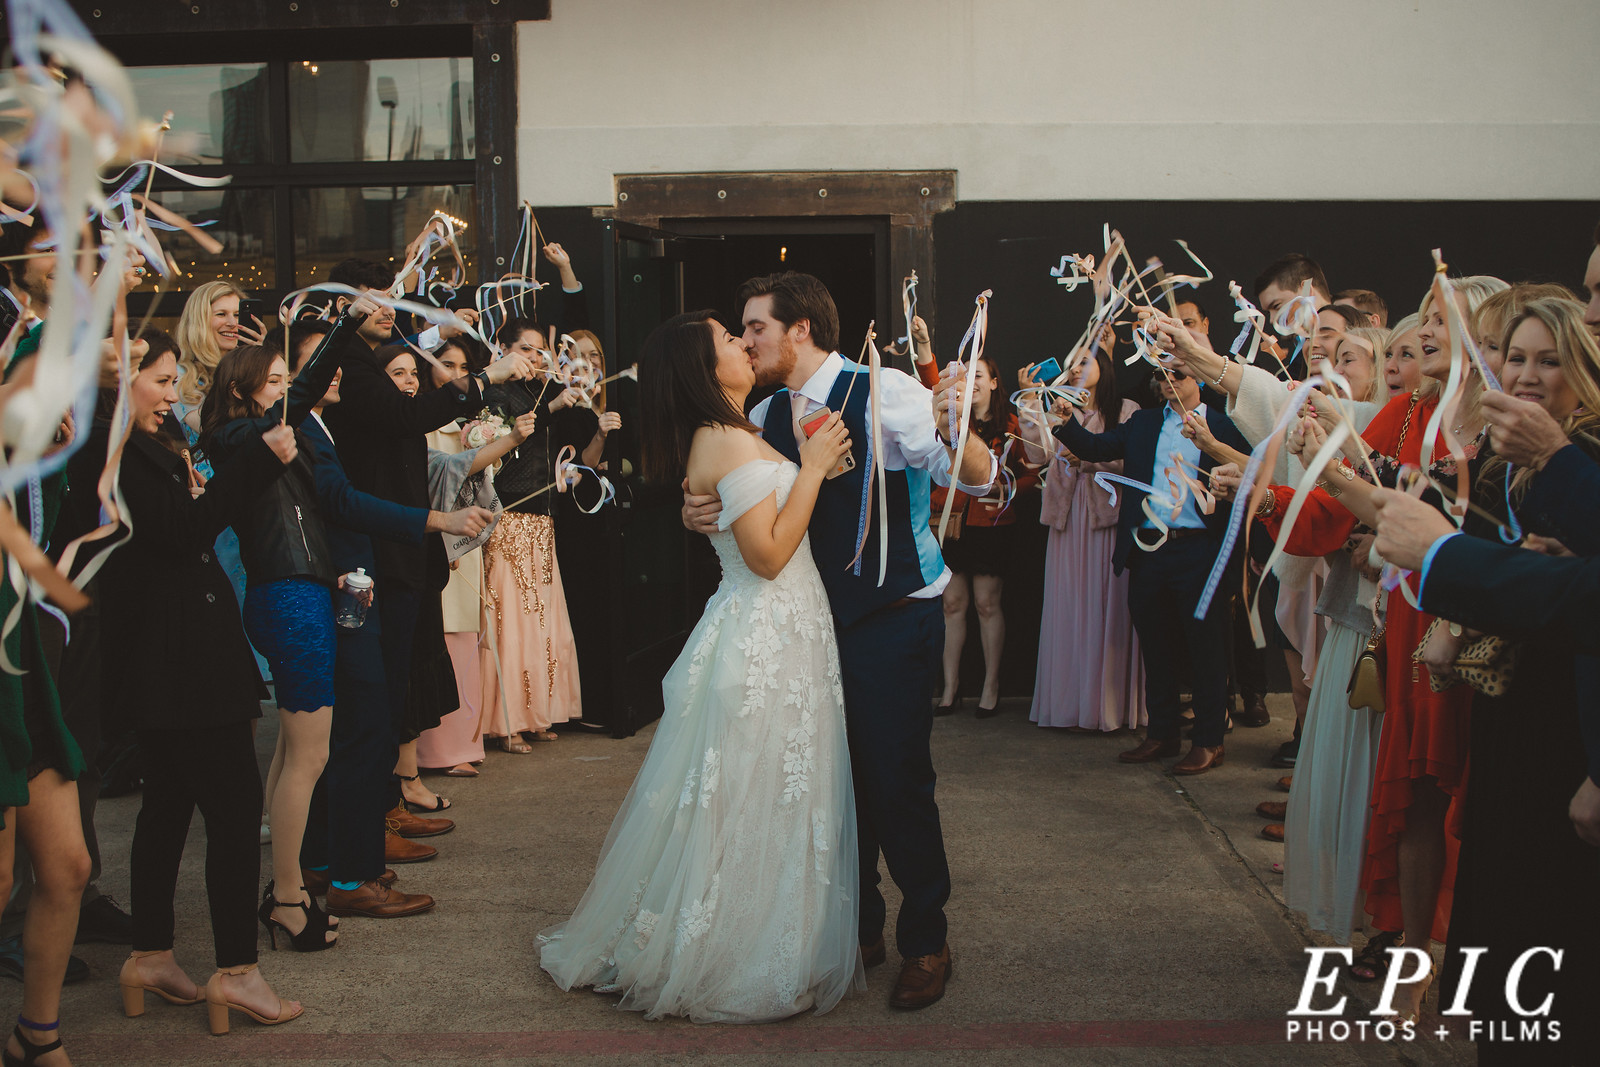 Grand exit of the wedding at Four Corners Brewery